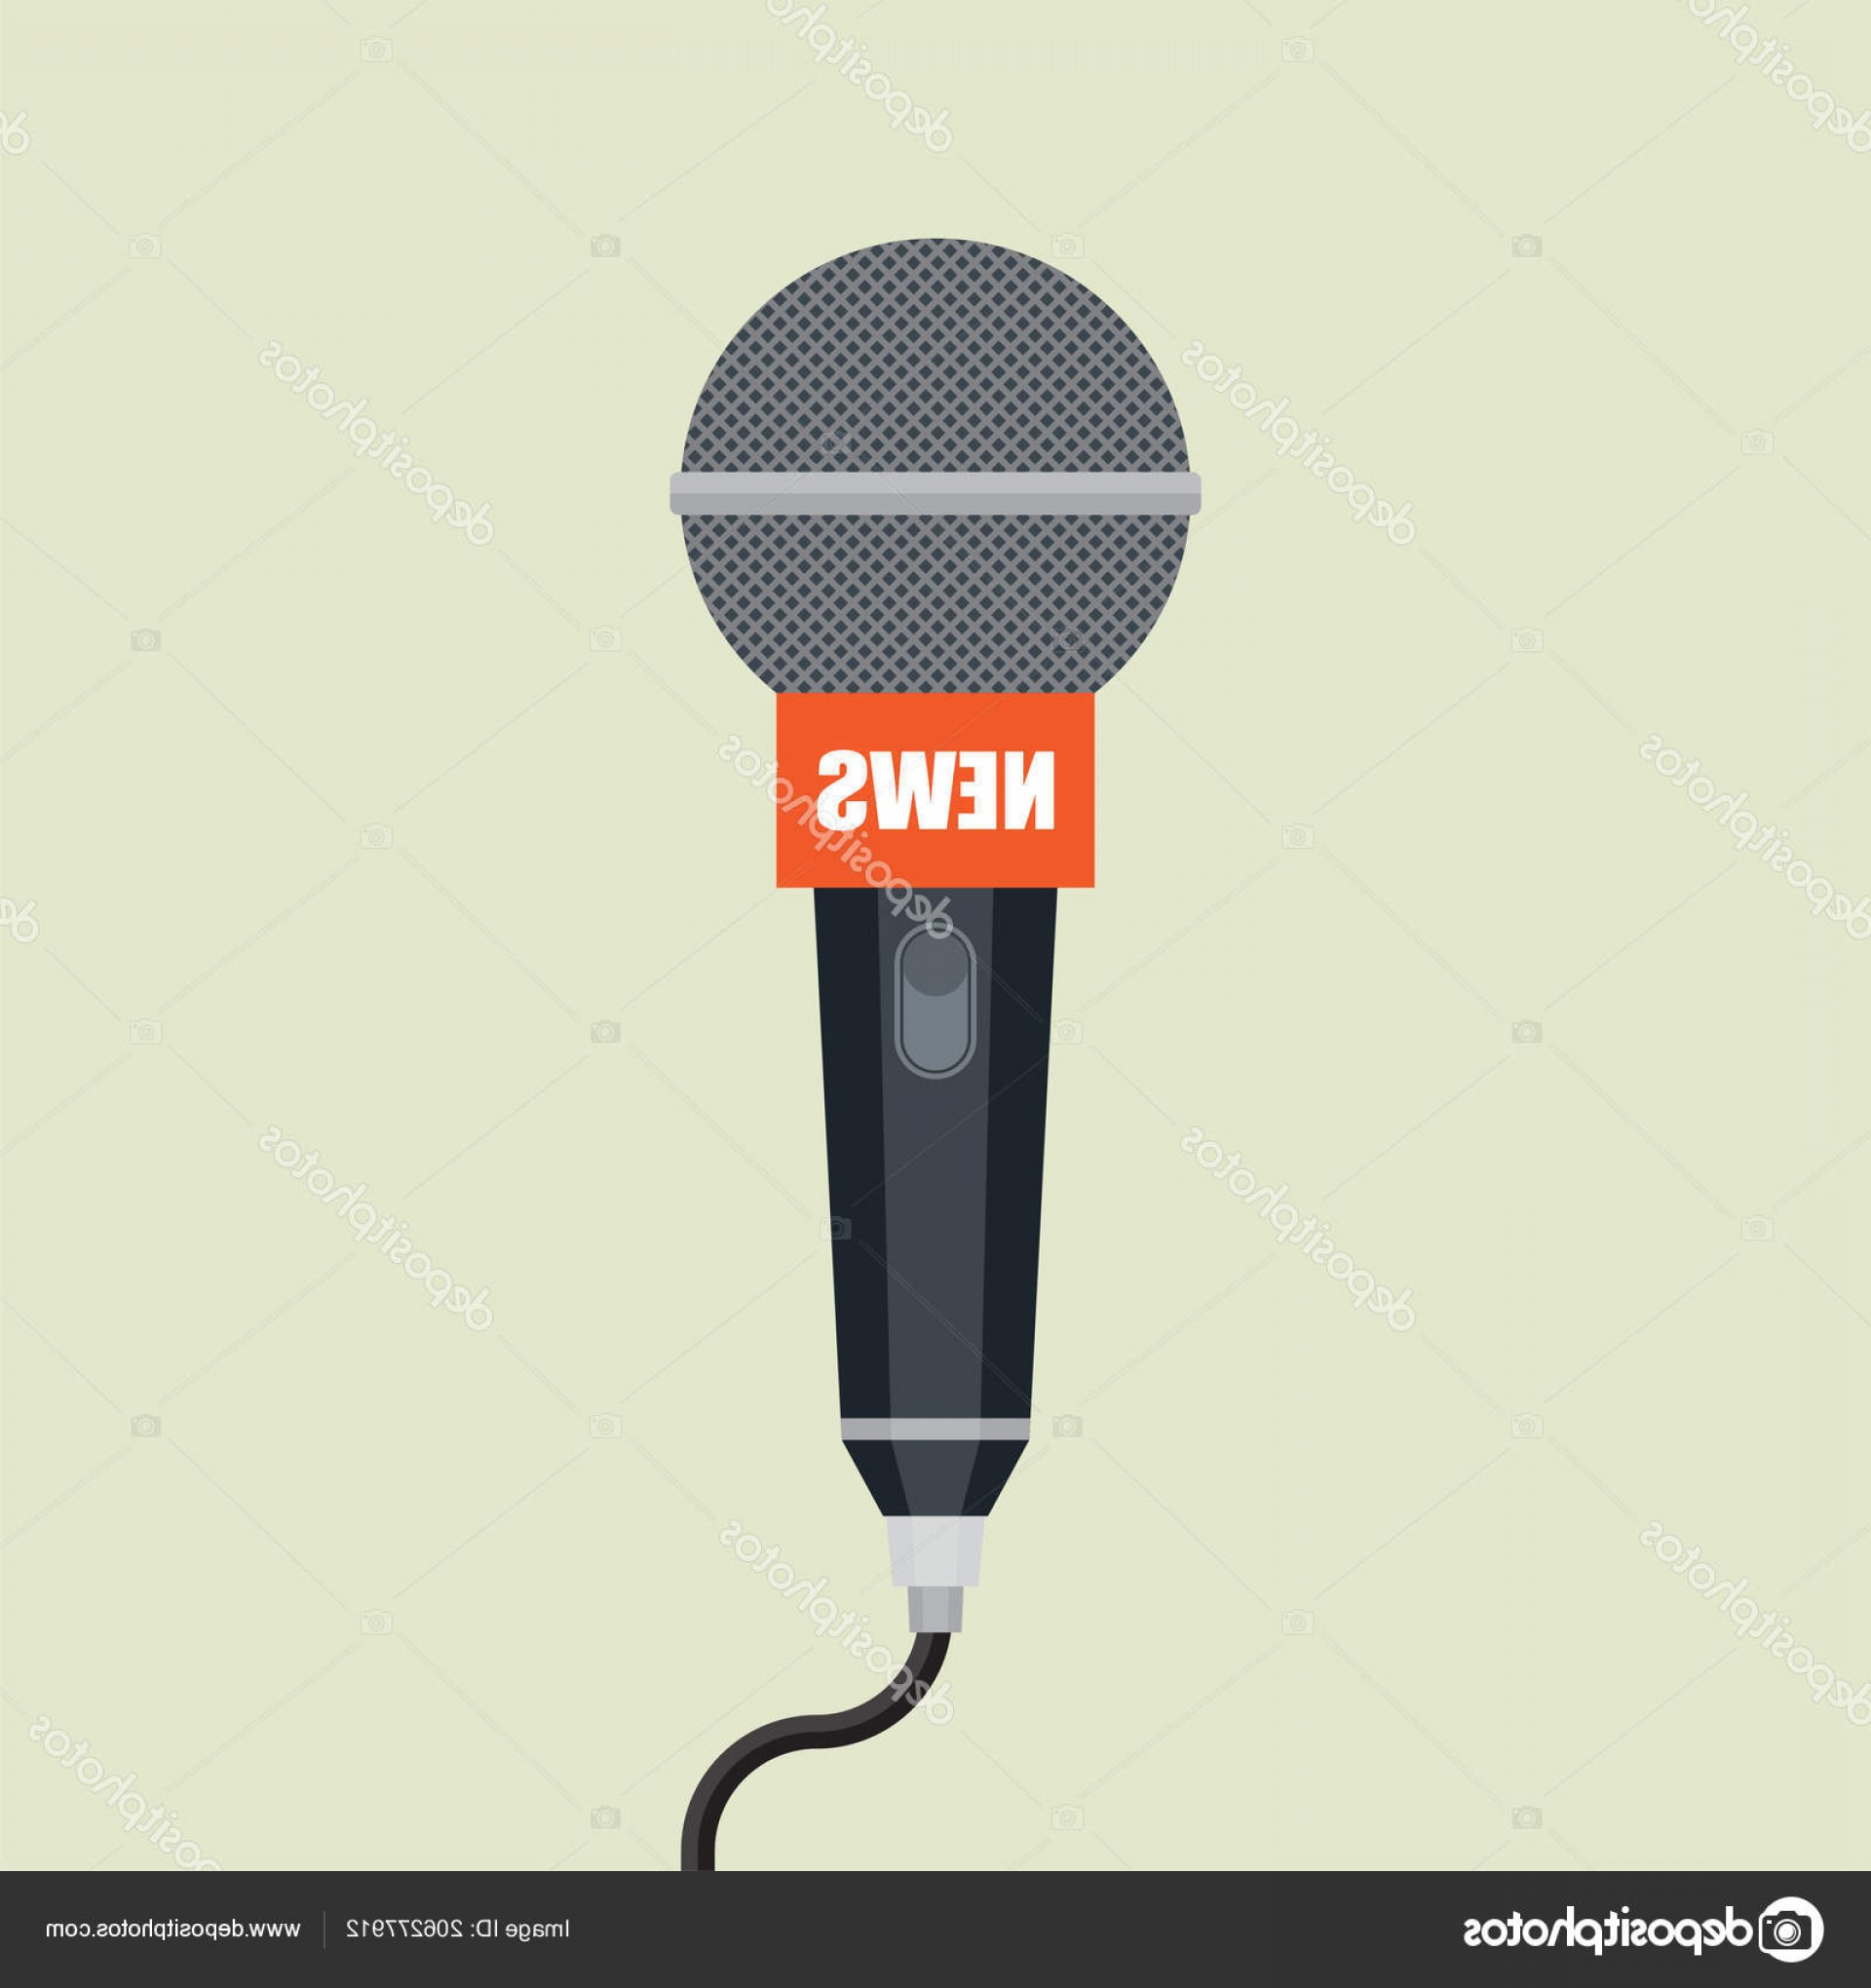 News Microphone Icon Vector: Stock Illustration Microphone Icon Interview News Radio